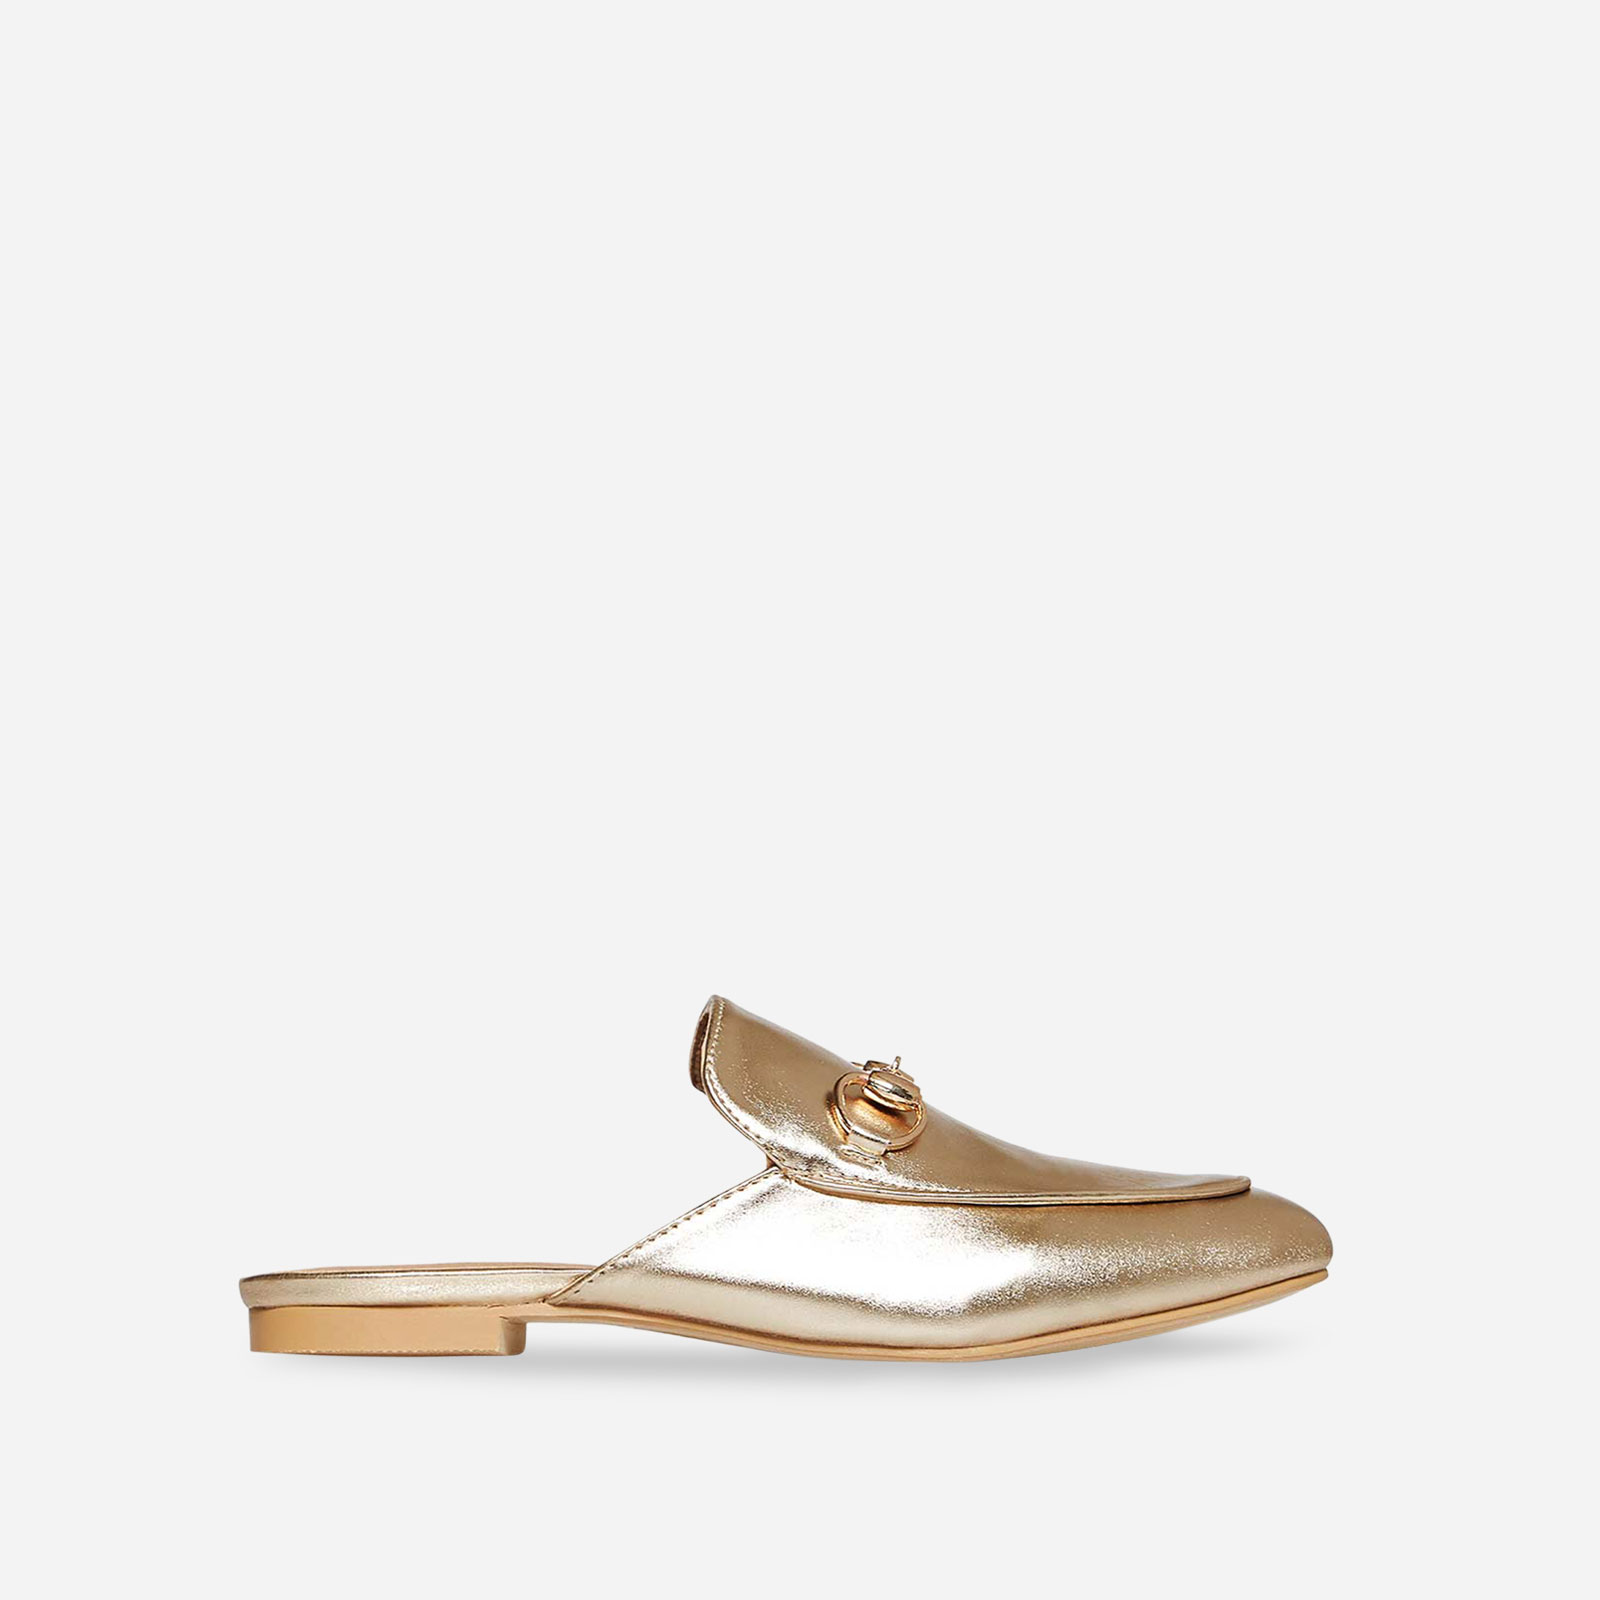 Miley Flat Mule In Gold Faux Leather Image 1